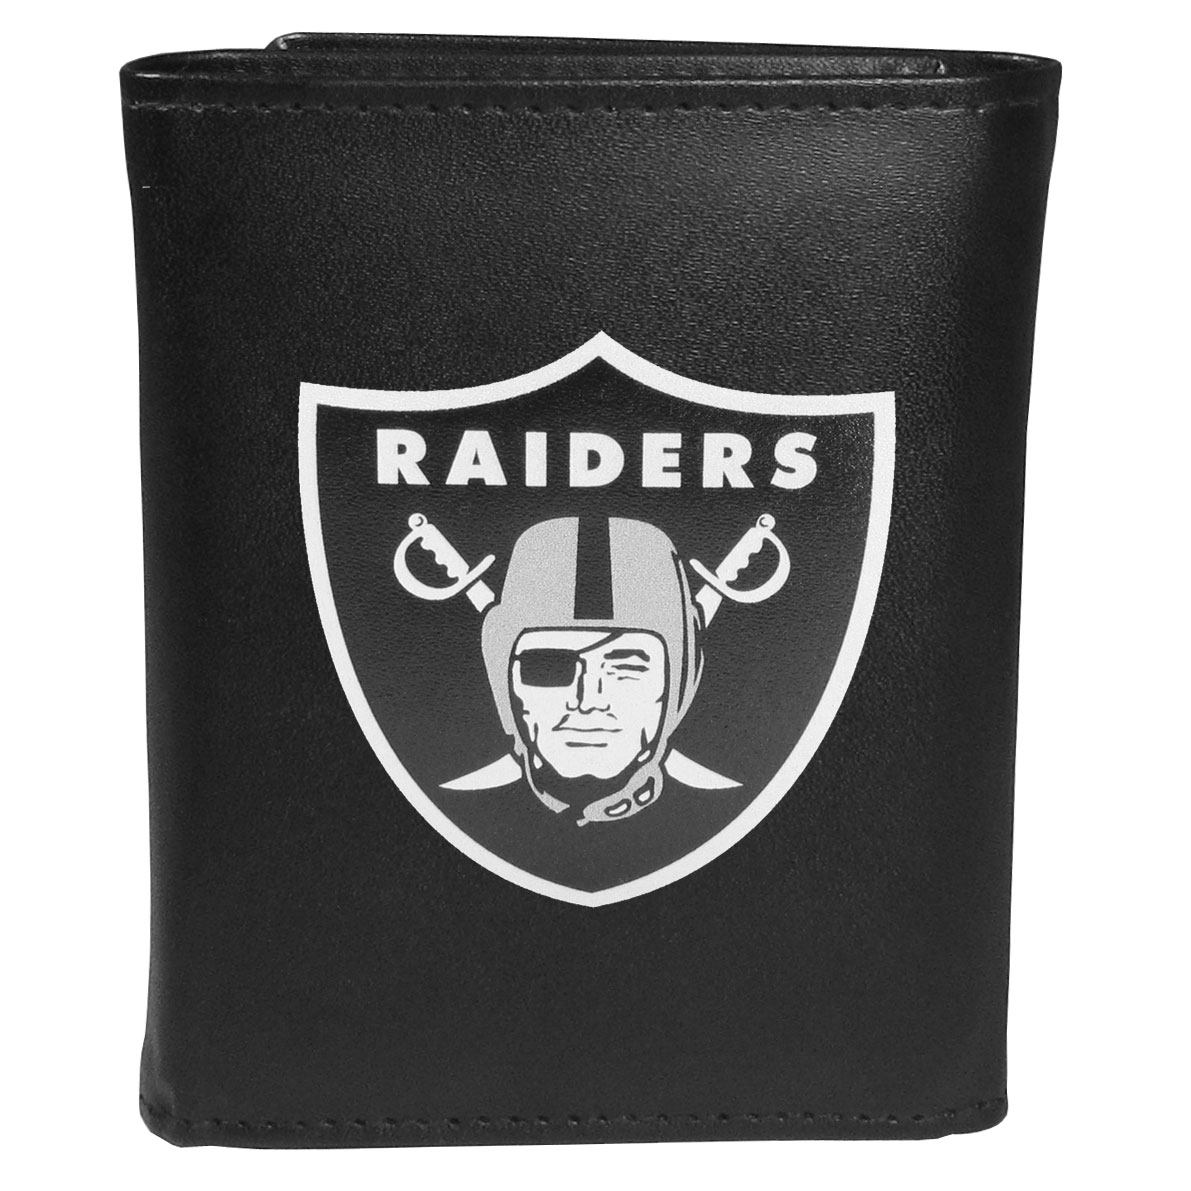 Oakland Raiders Leather Tri-fold Wallet, Large Logo - Our classic fine leather tri-fold wallet is meticulously crafted with genuine leather that will age beautifully so you will have a quality wallet for years to come. This is fan apparel at its finest. The wallet is packed with organizational  features; lots of credit card slots, large billfold pocket, and a window ID slot. The front of the wallet features an extra large Oakland Raiders printed logo.